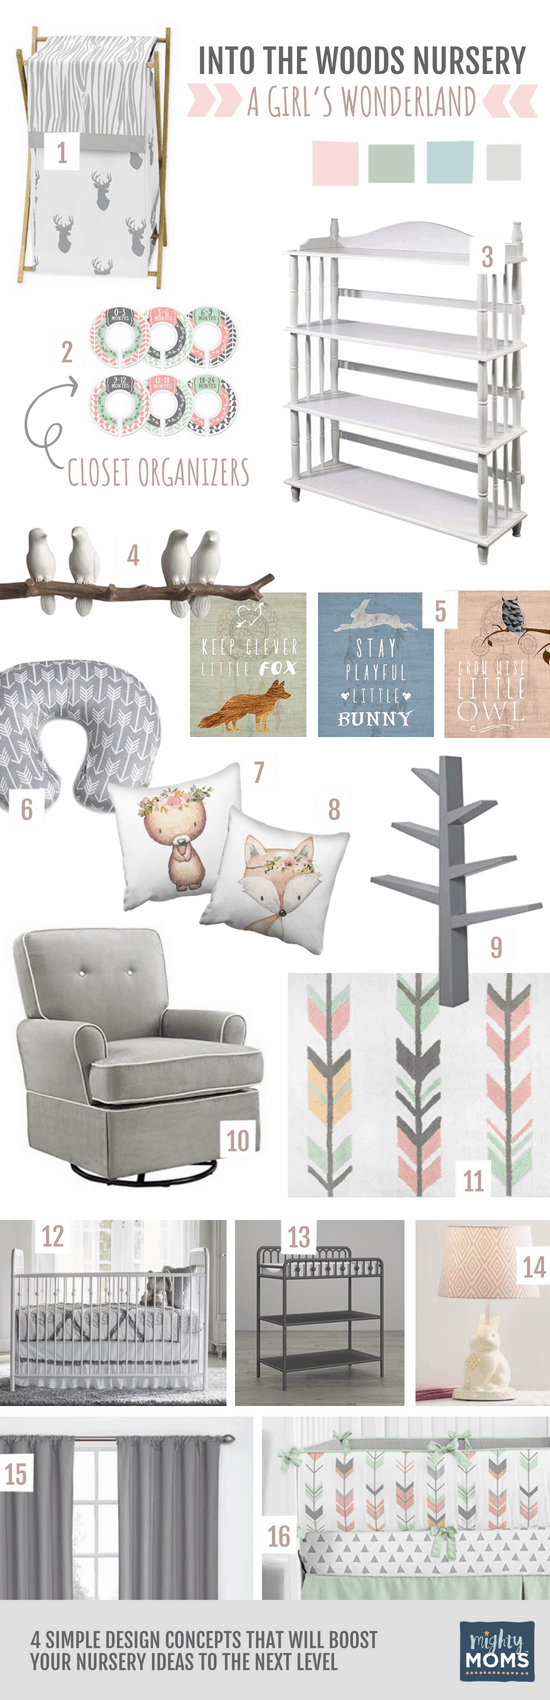 Woodland Nursery Ideas for a Girl - MightyMoms.club